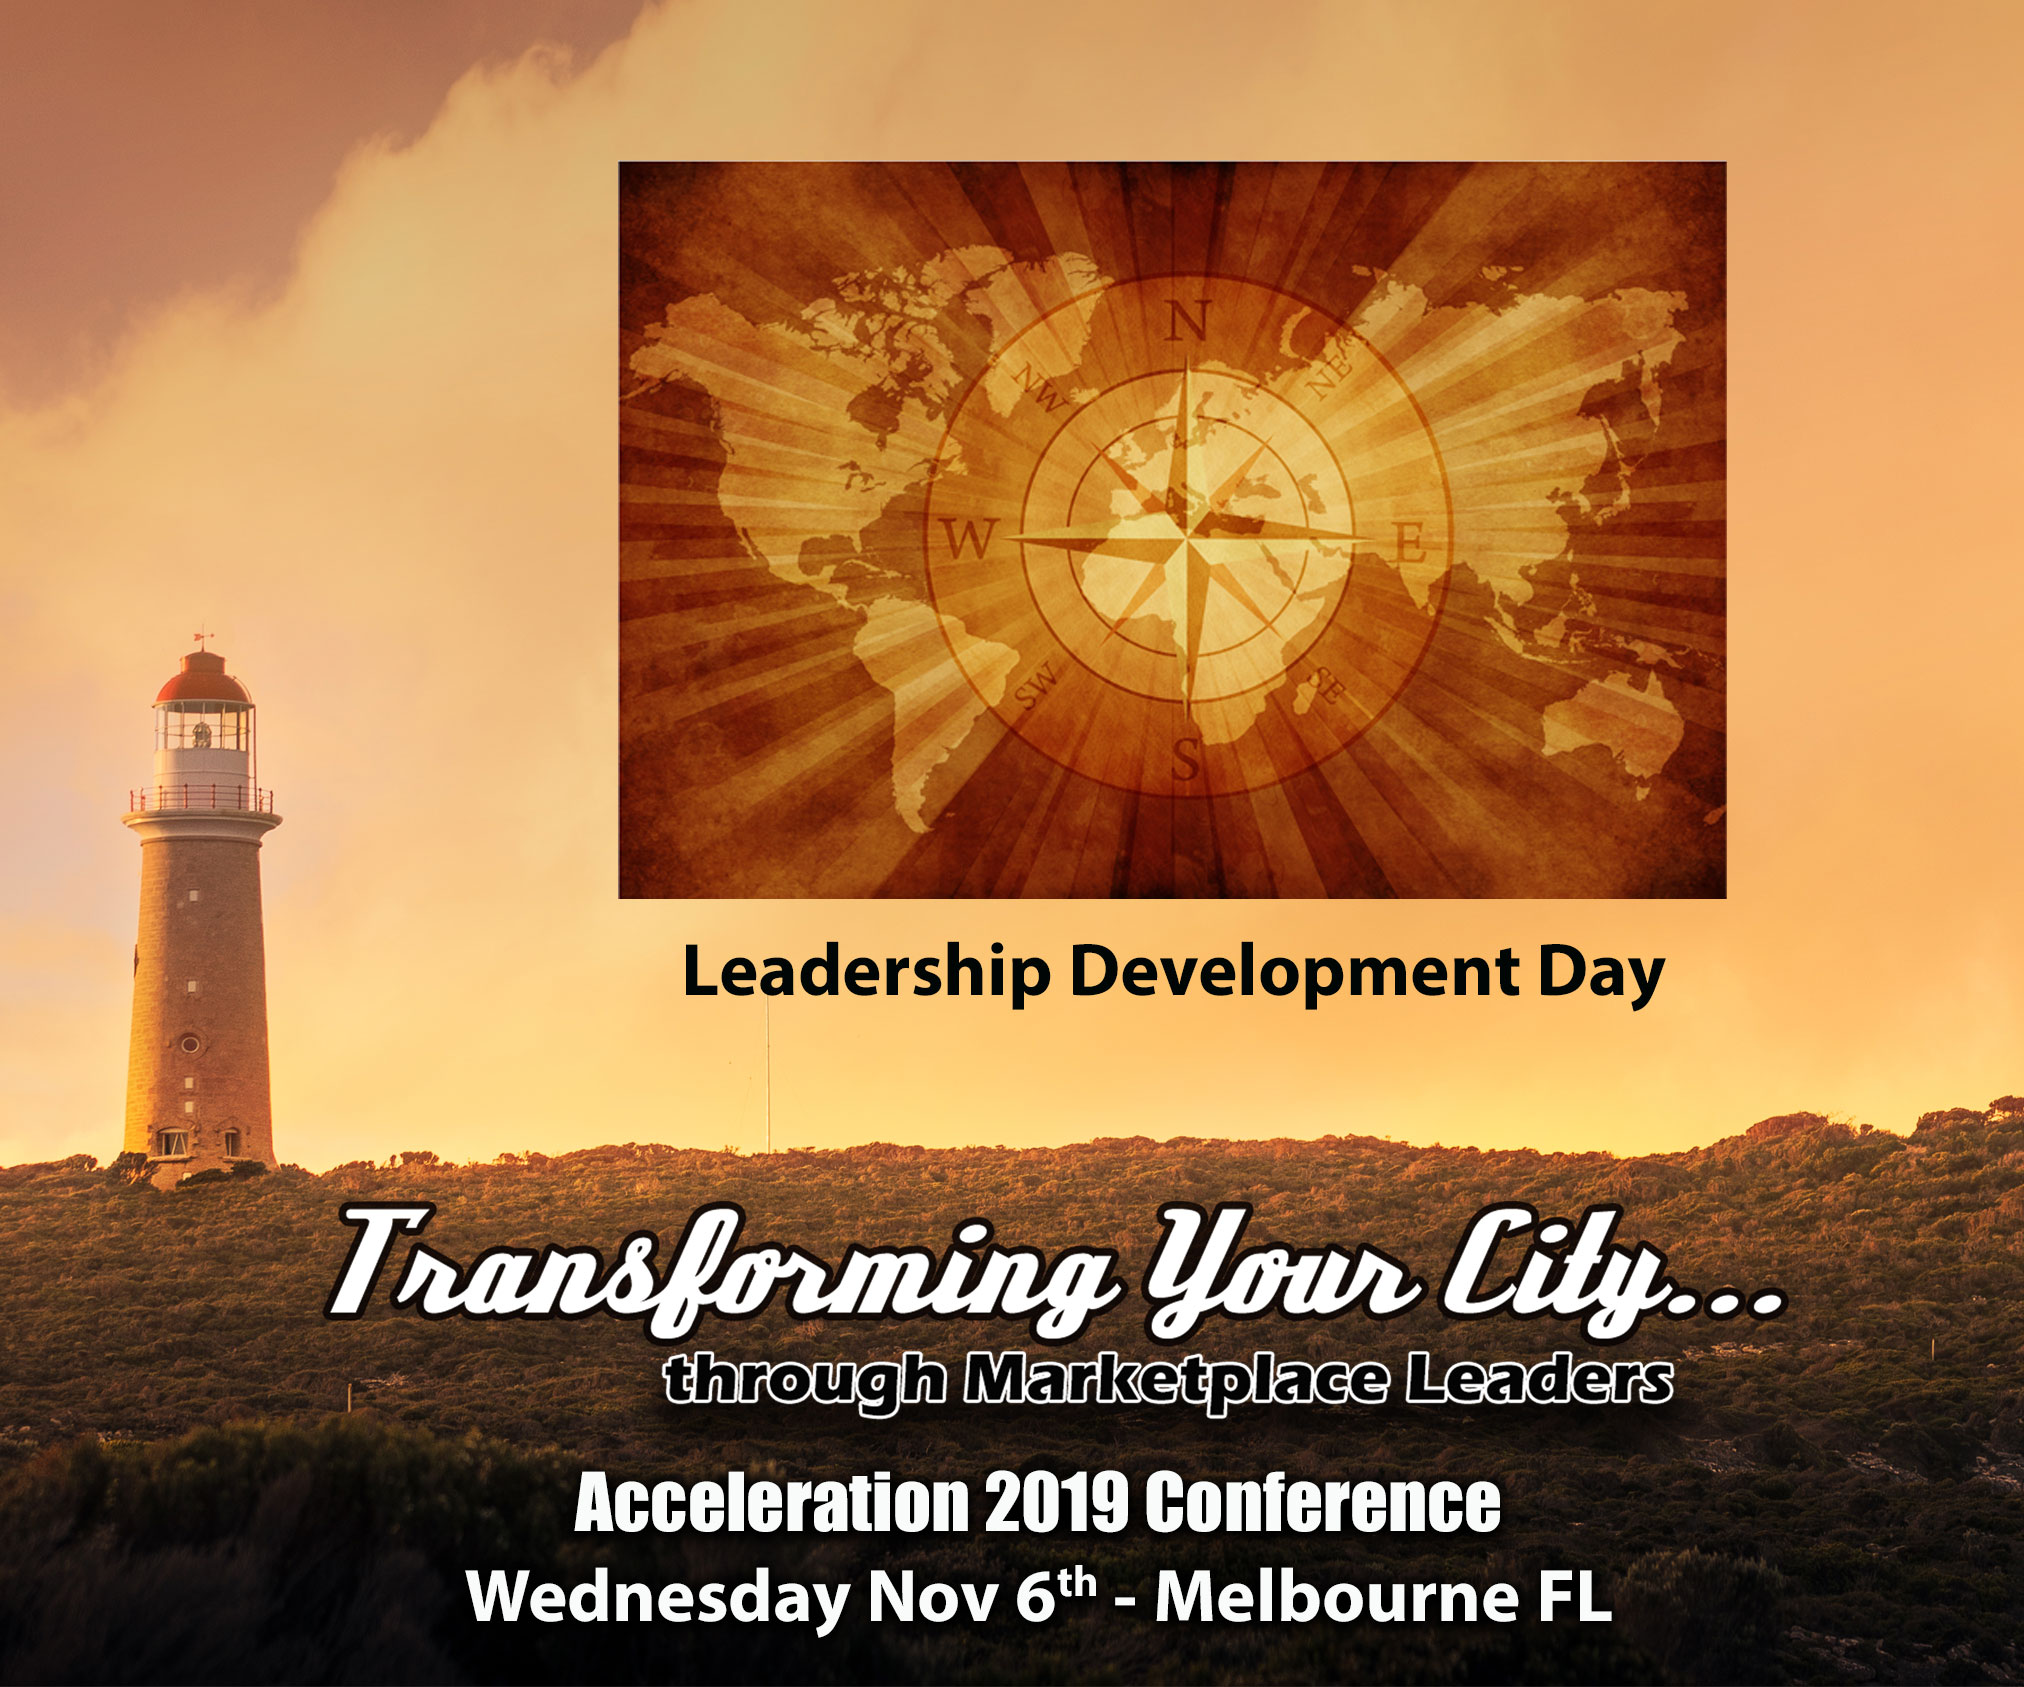 Transforming Your City Leadership Development Day